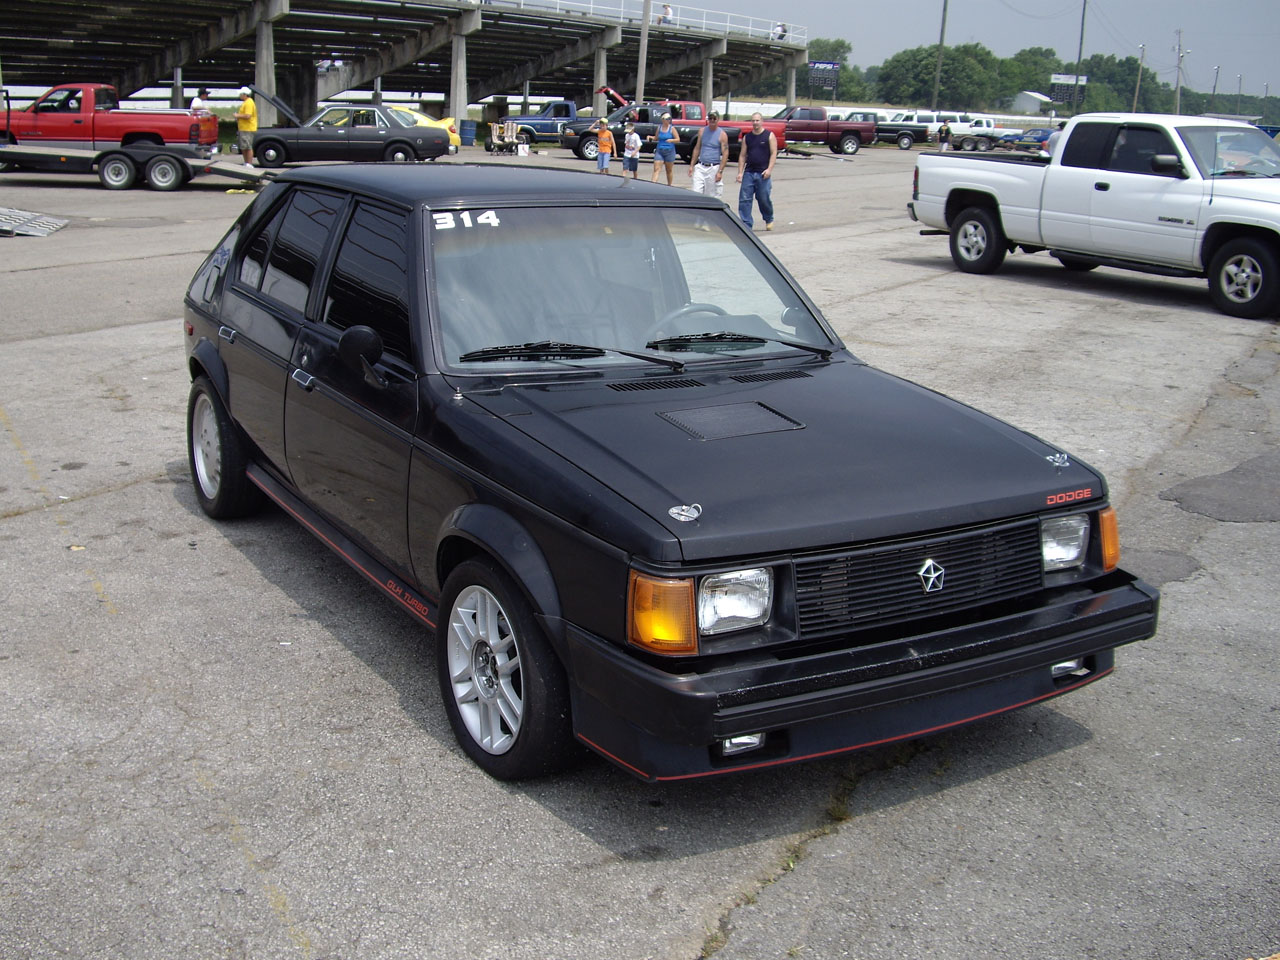 Dodge Omni wheels #4